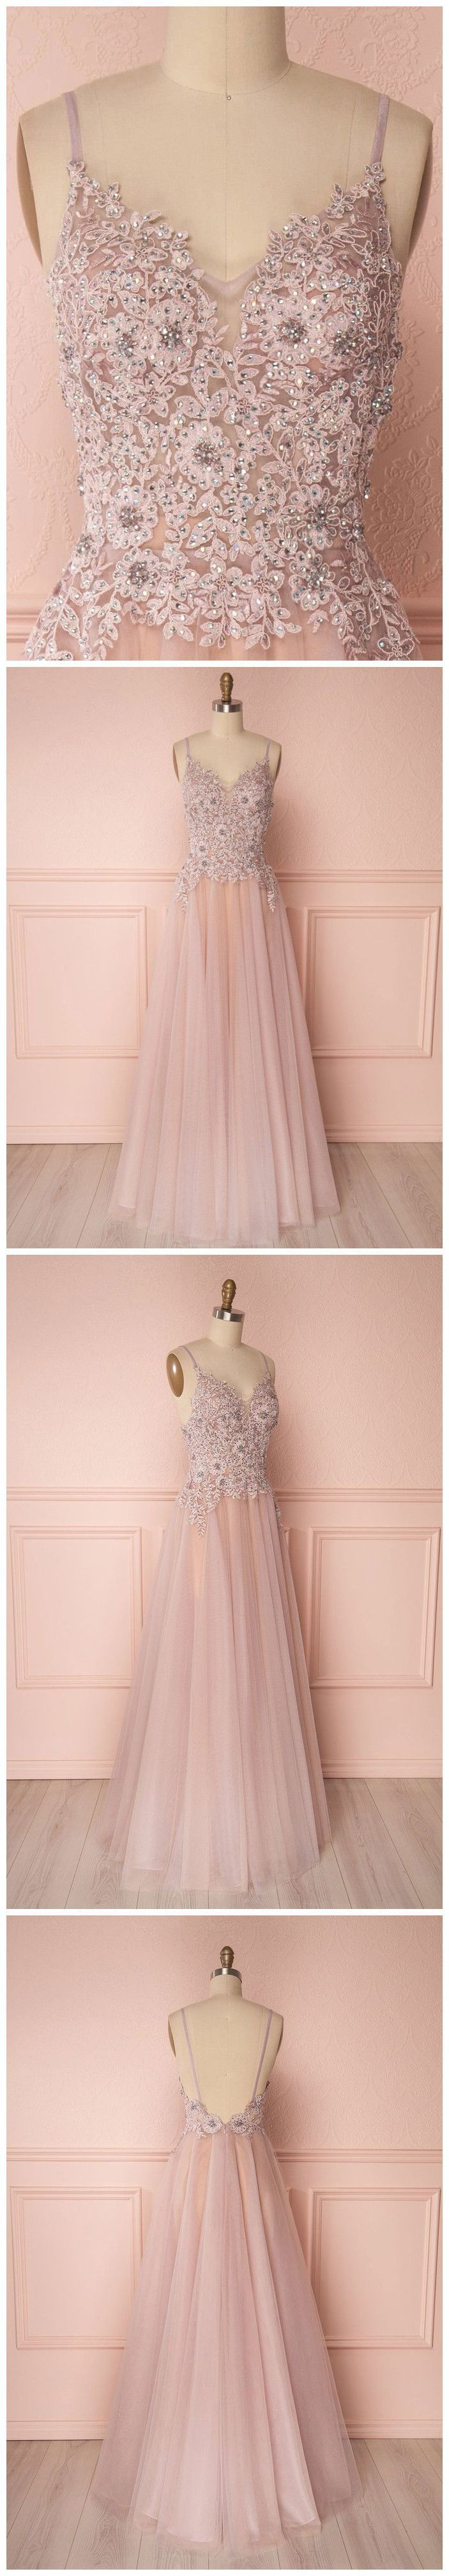 6b1a68efe66 A-line Spaghetti Straps Pink Prom Dress With Lace Prom Dresses Long Evening  Dress